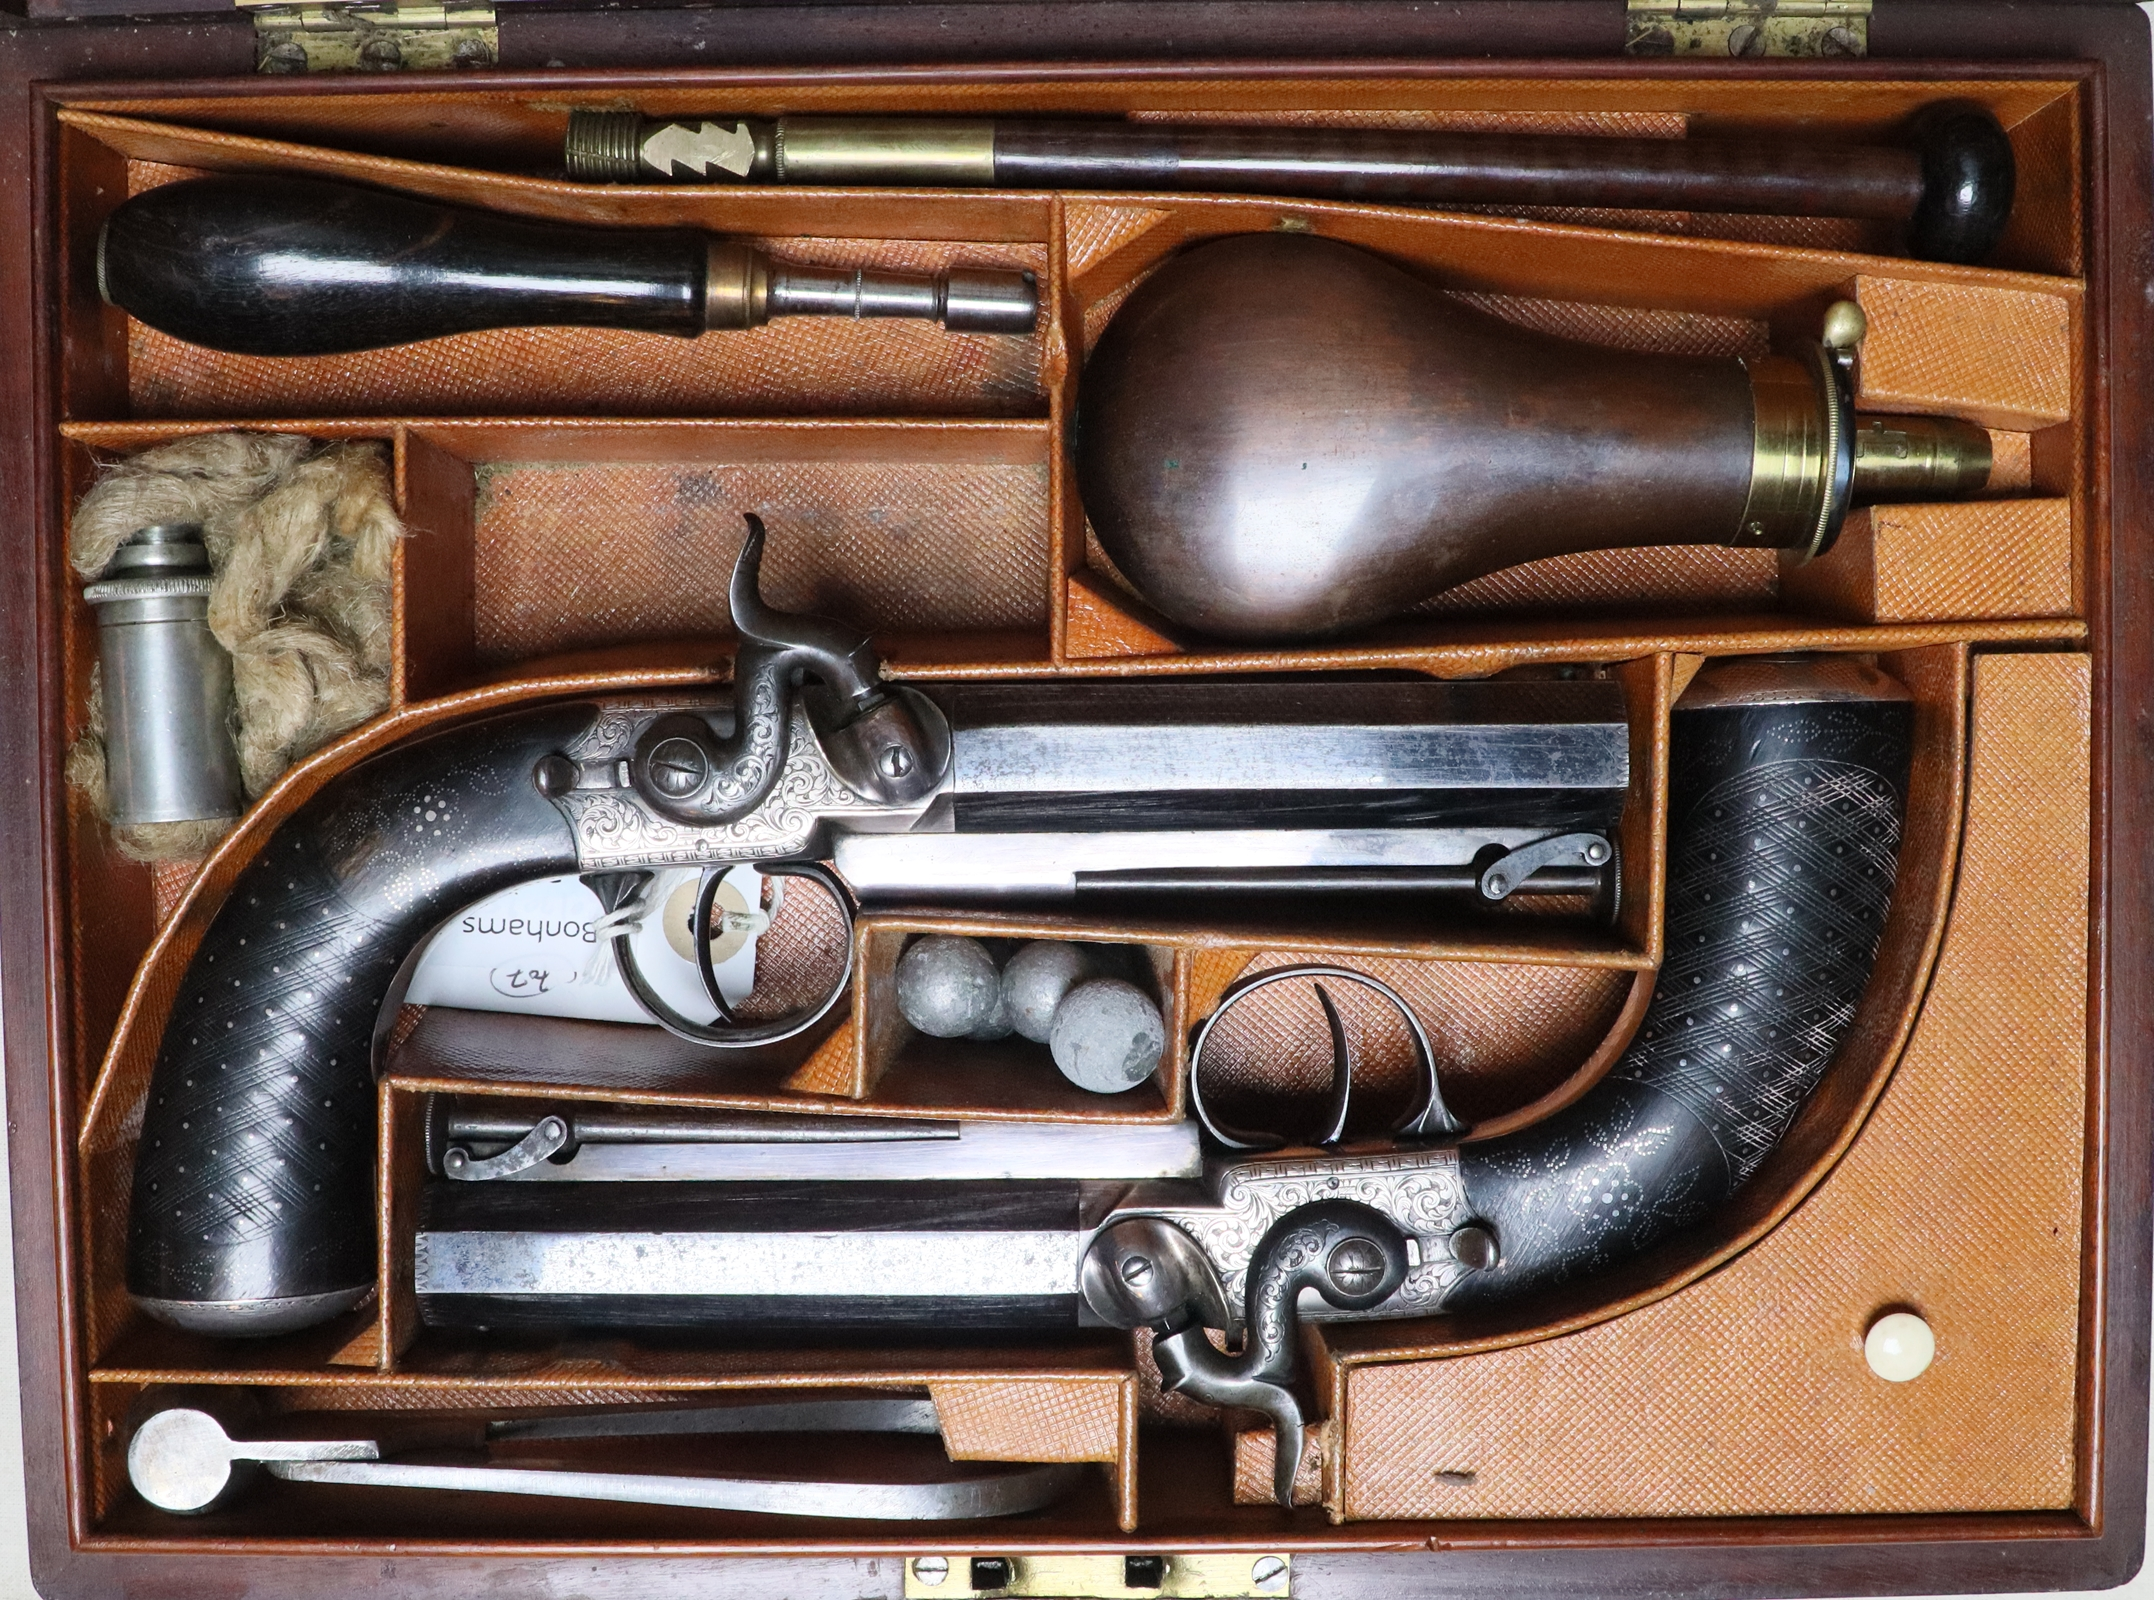 Pigskin lined case of pair of percussion pocket pistols.